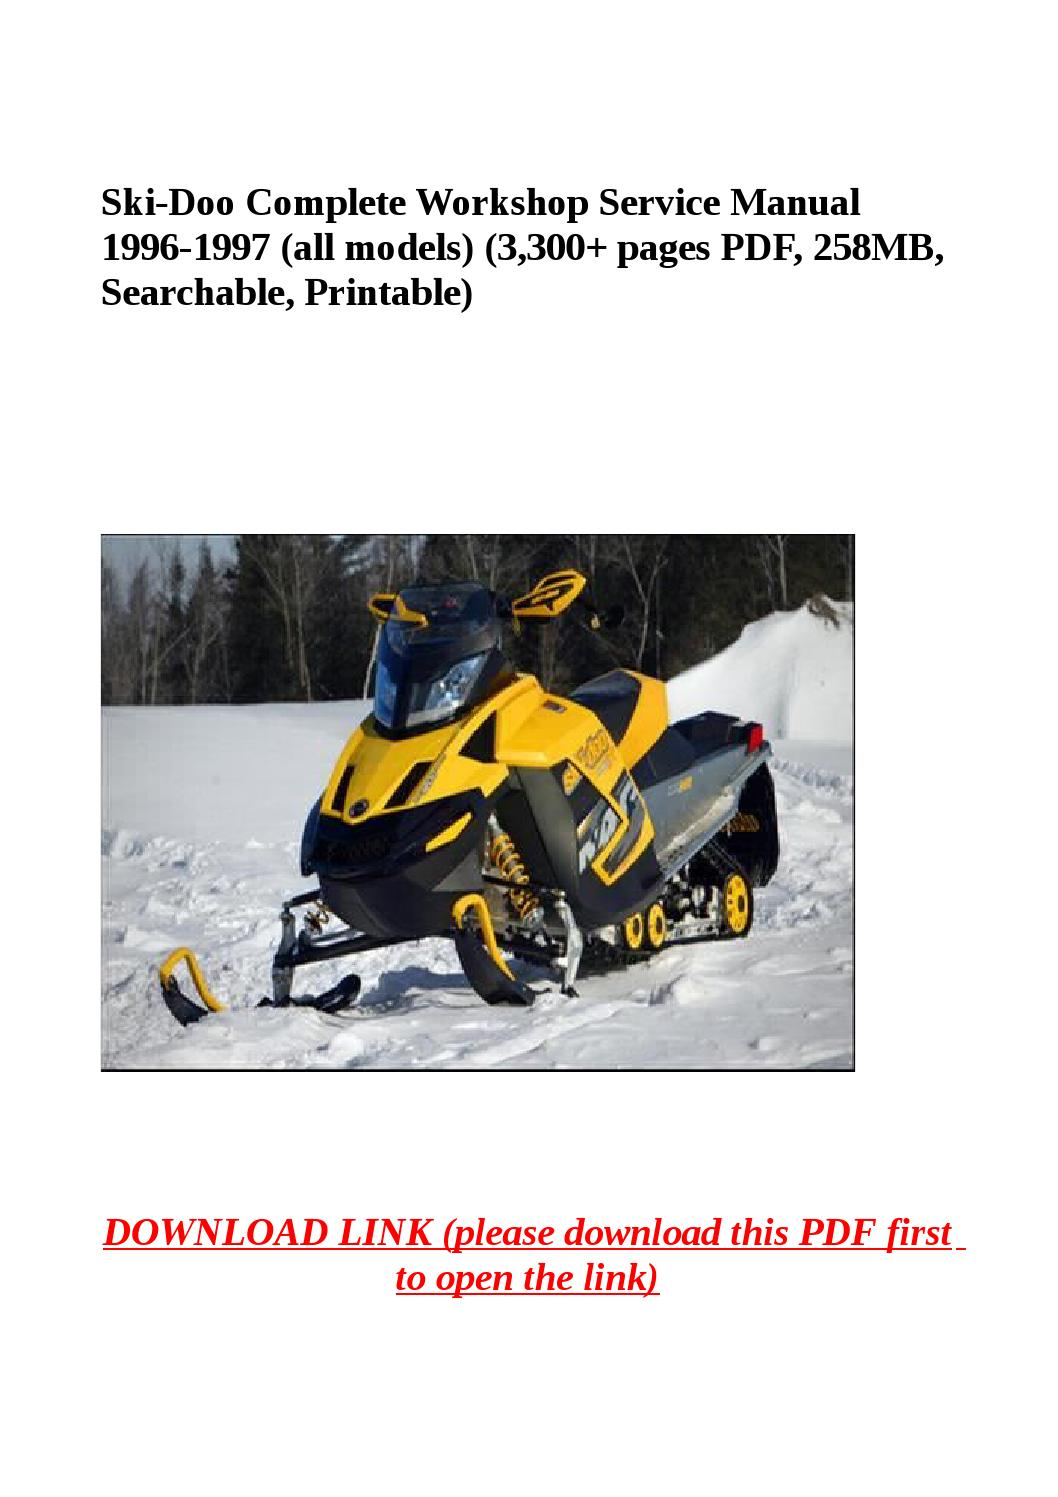 Ski Doo Complete Workshop Service Manual 1996 1997 All Models 1998 Wiring Diagram Online 3300 Pages Pdf 258mb Searchable By Yhkj Issuu